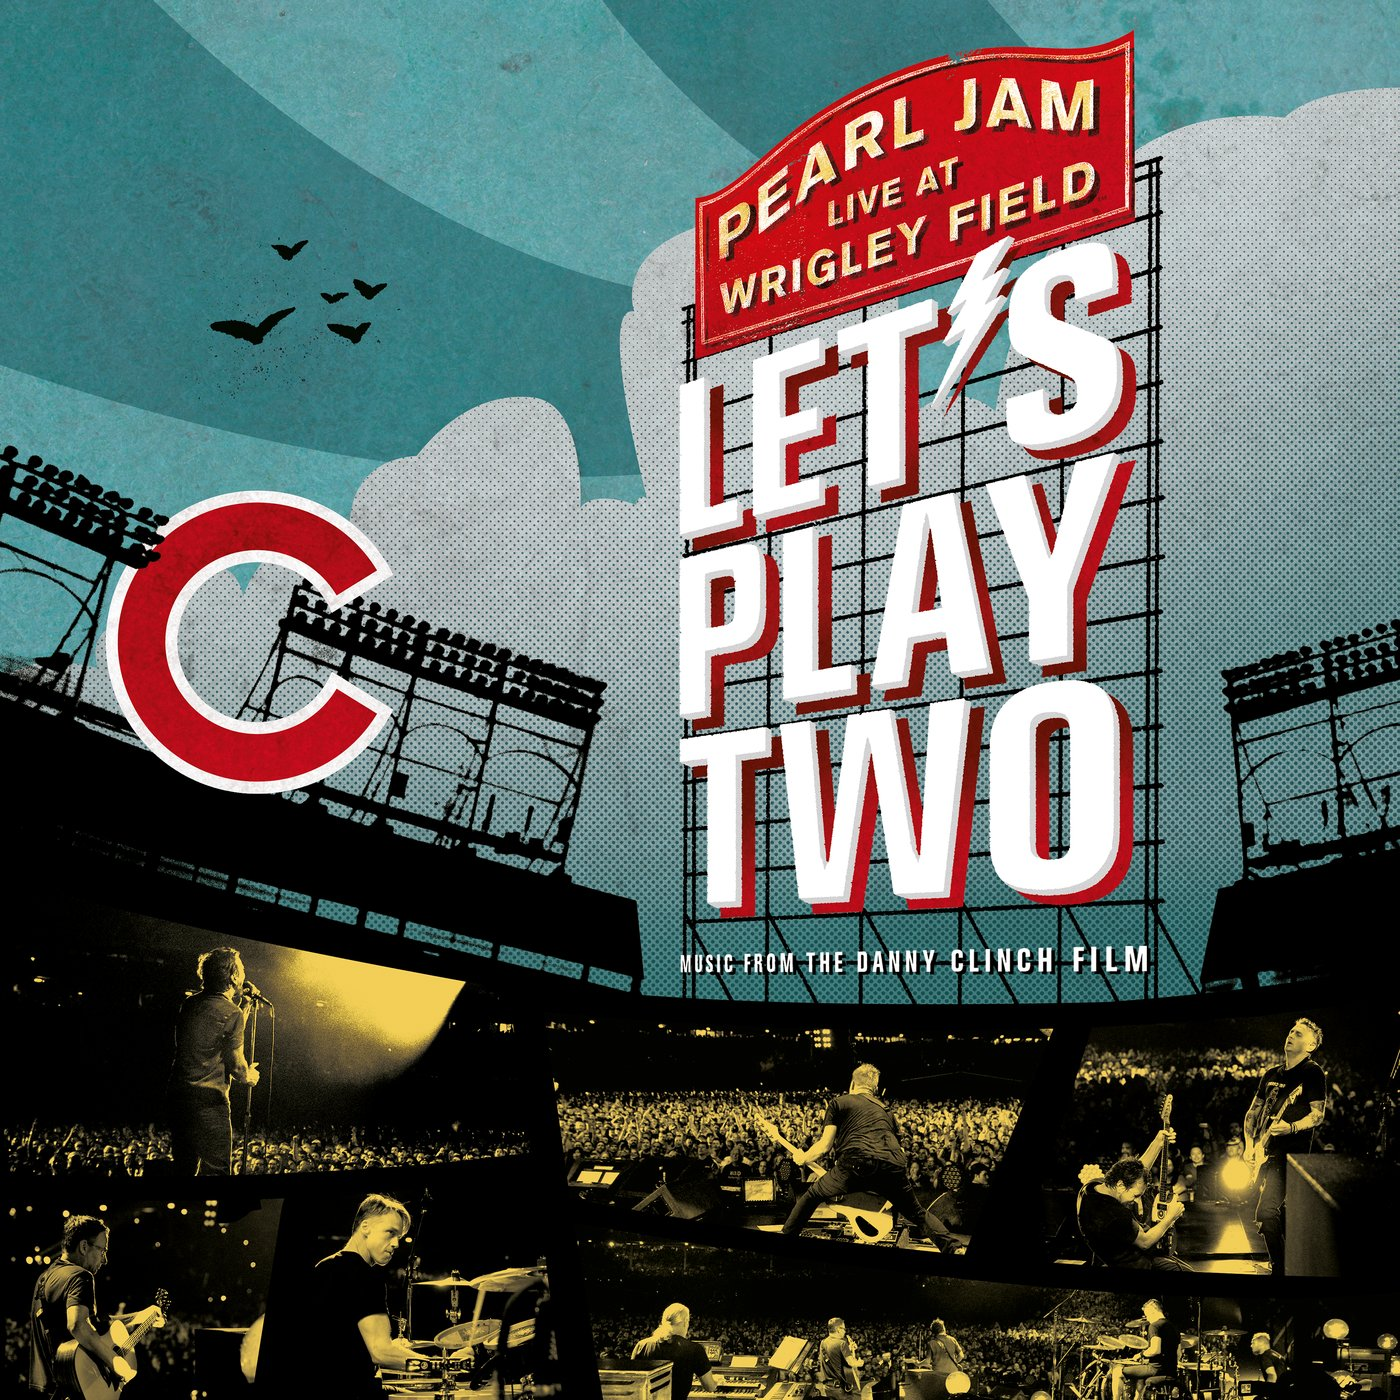 Let's Play Two [Vinilo]